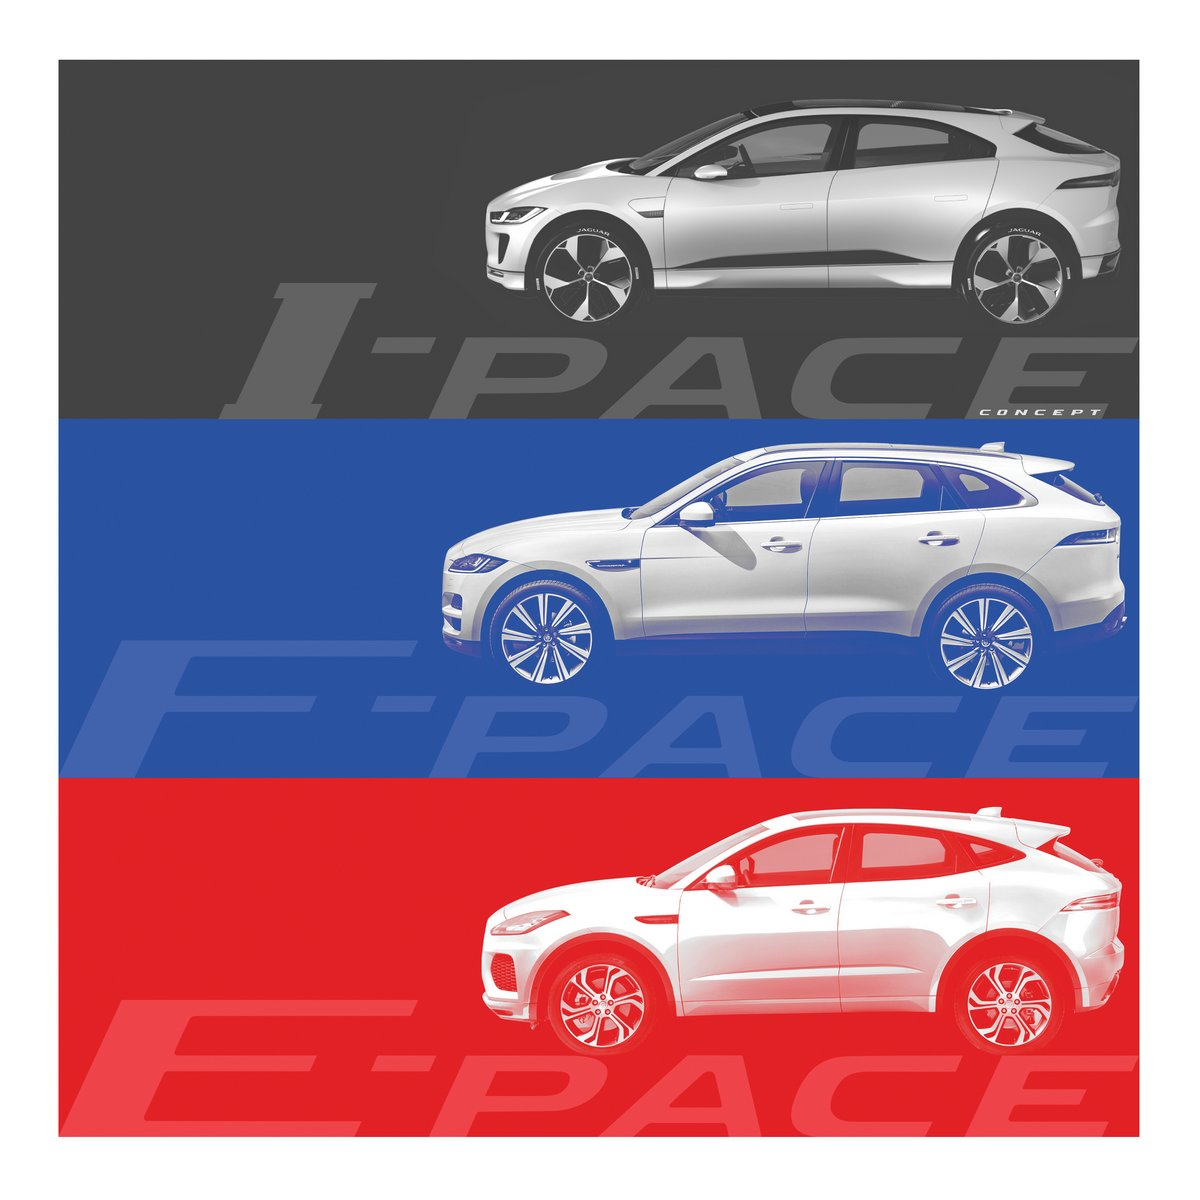 new jaguar e pace baby suv teased debuts july 13 priced from 38 600. Black Bedroom Furniture Sets. Home Design Ideas